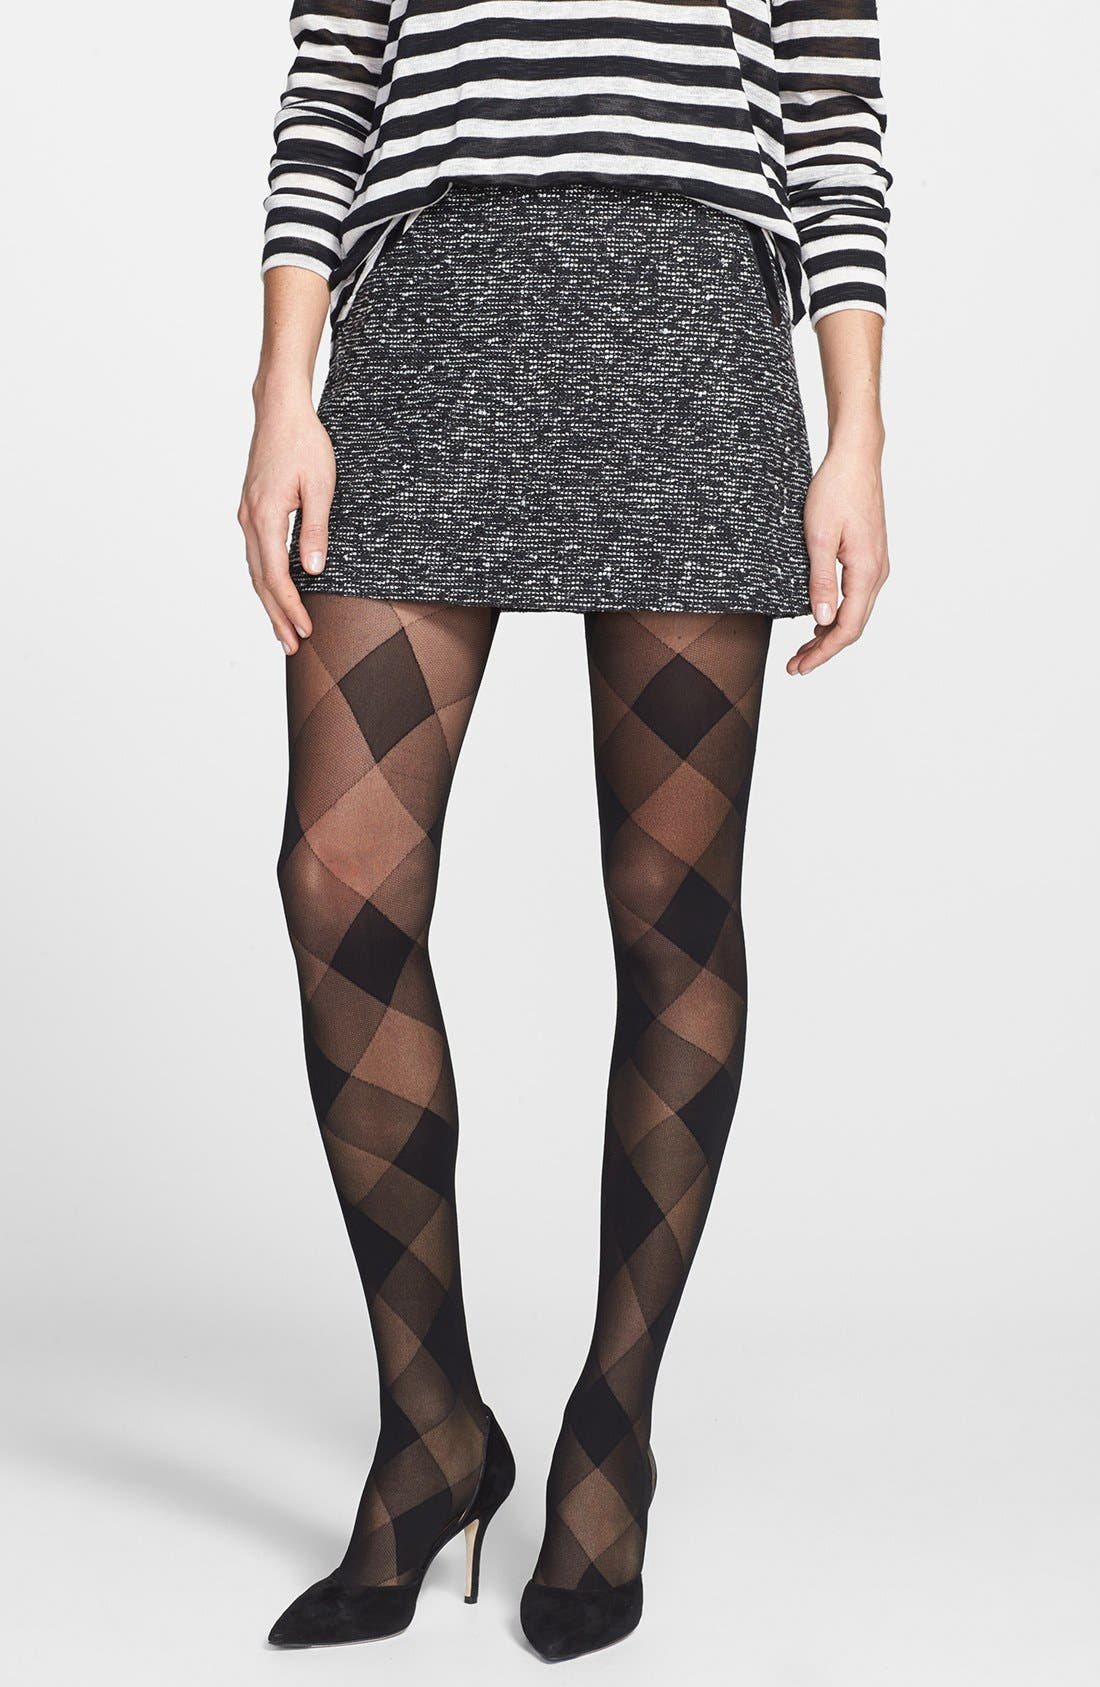 Alternate Image 1 Selected - Nordstrom 'Perfect Plaid' Tights (2 for $24)